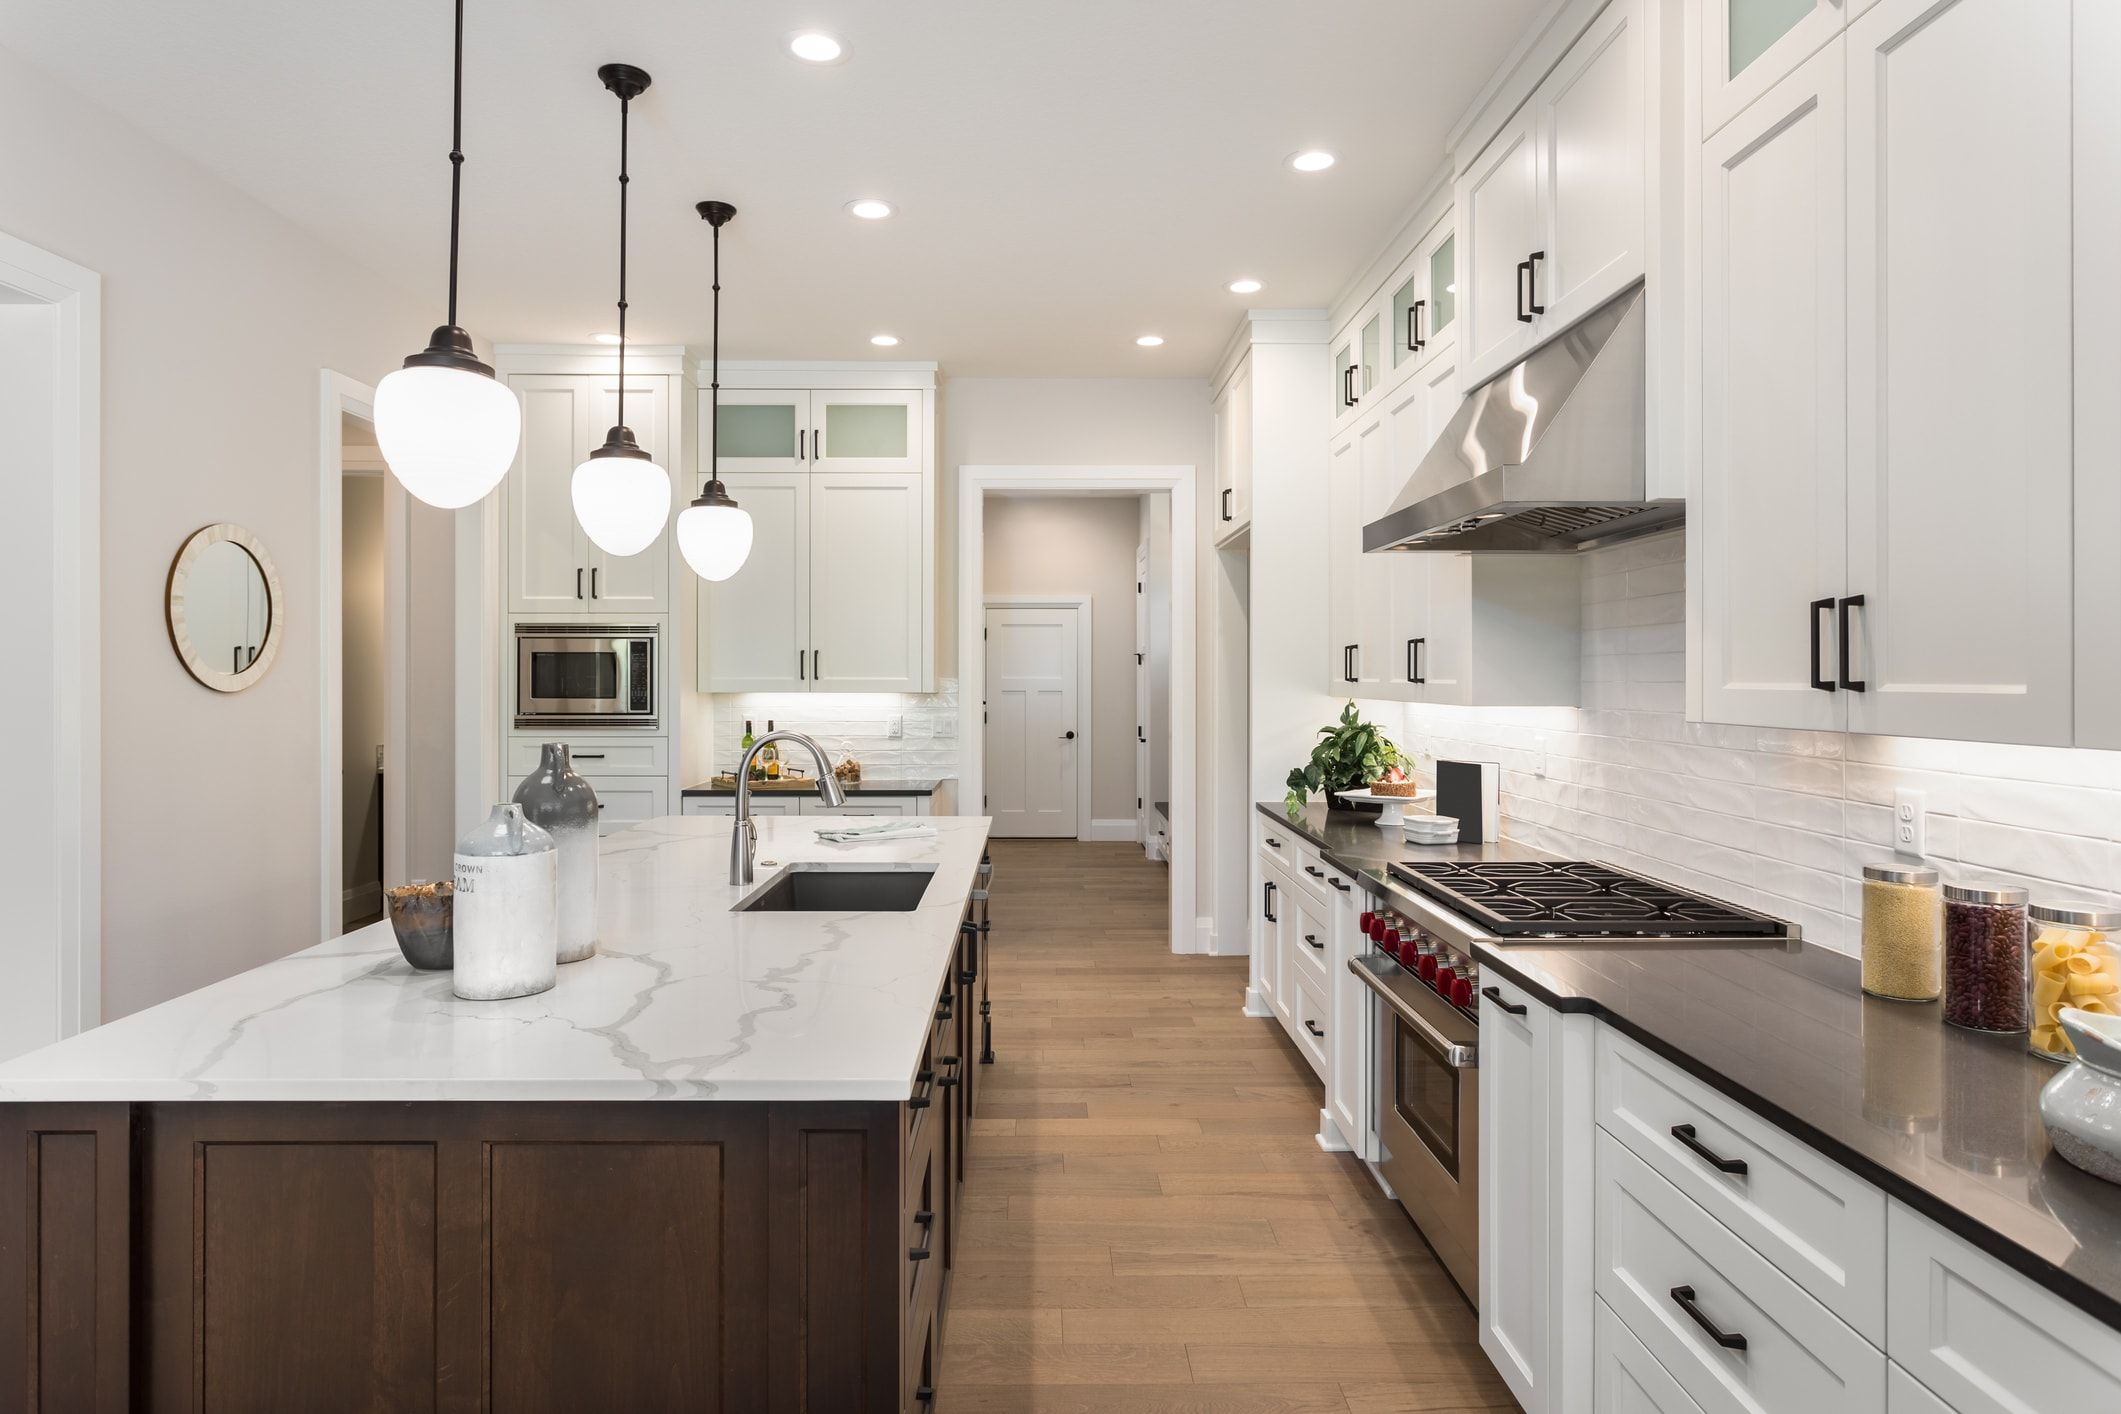 A Reliable High End Cabinet Companies Near Me Kitchen Remodel